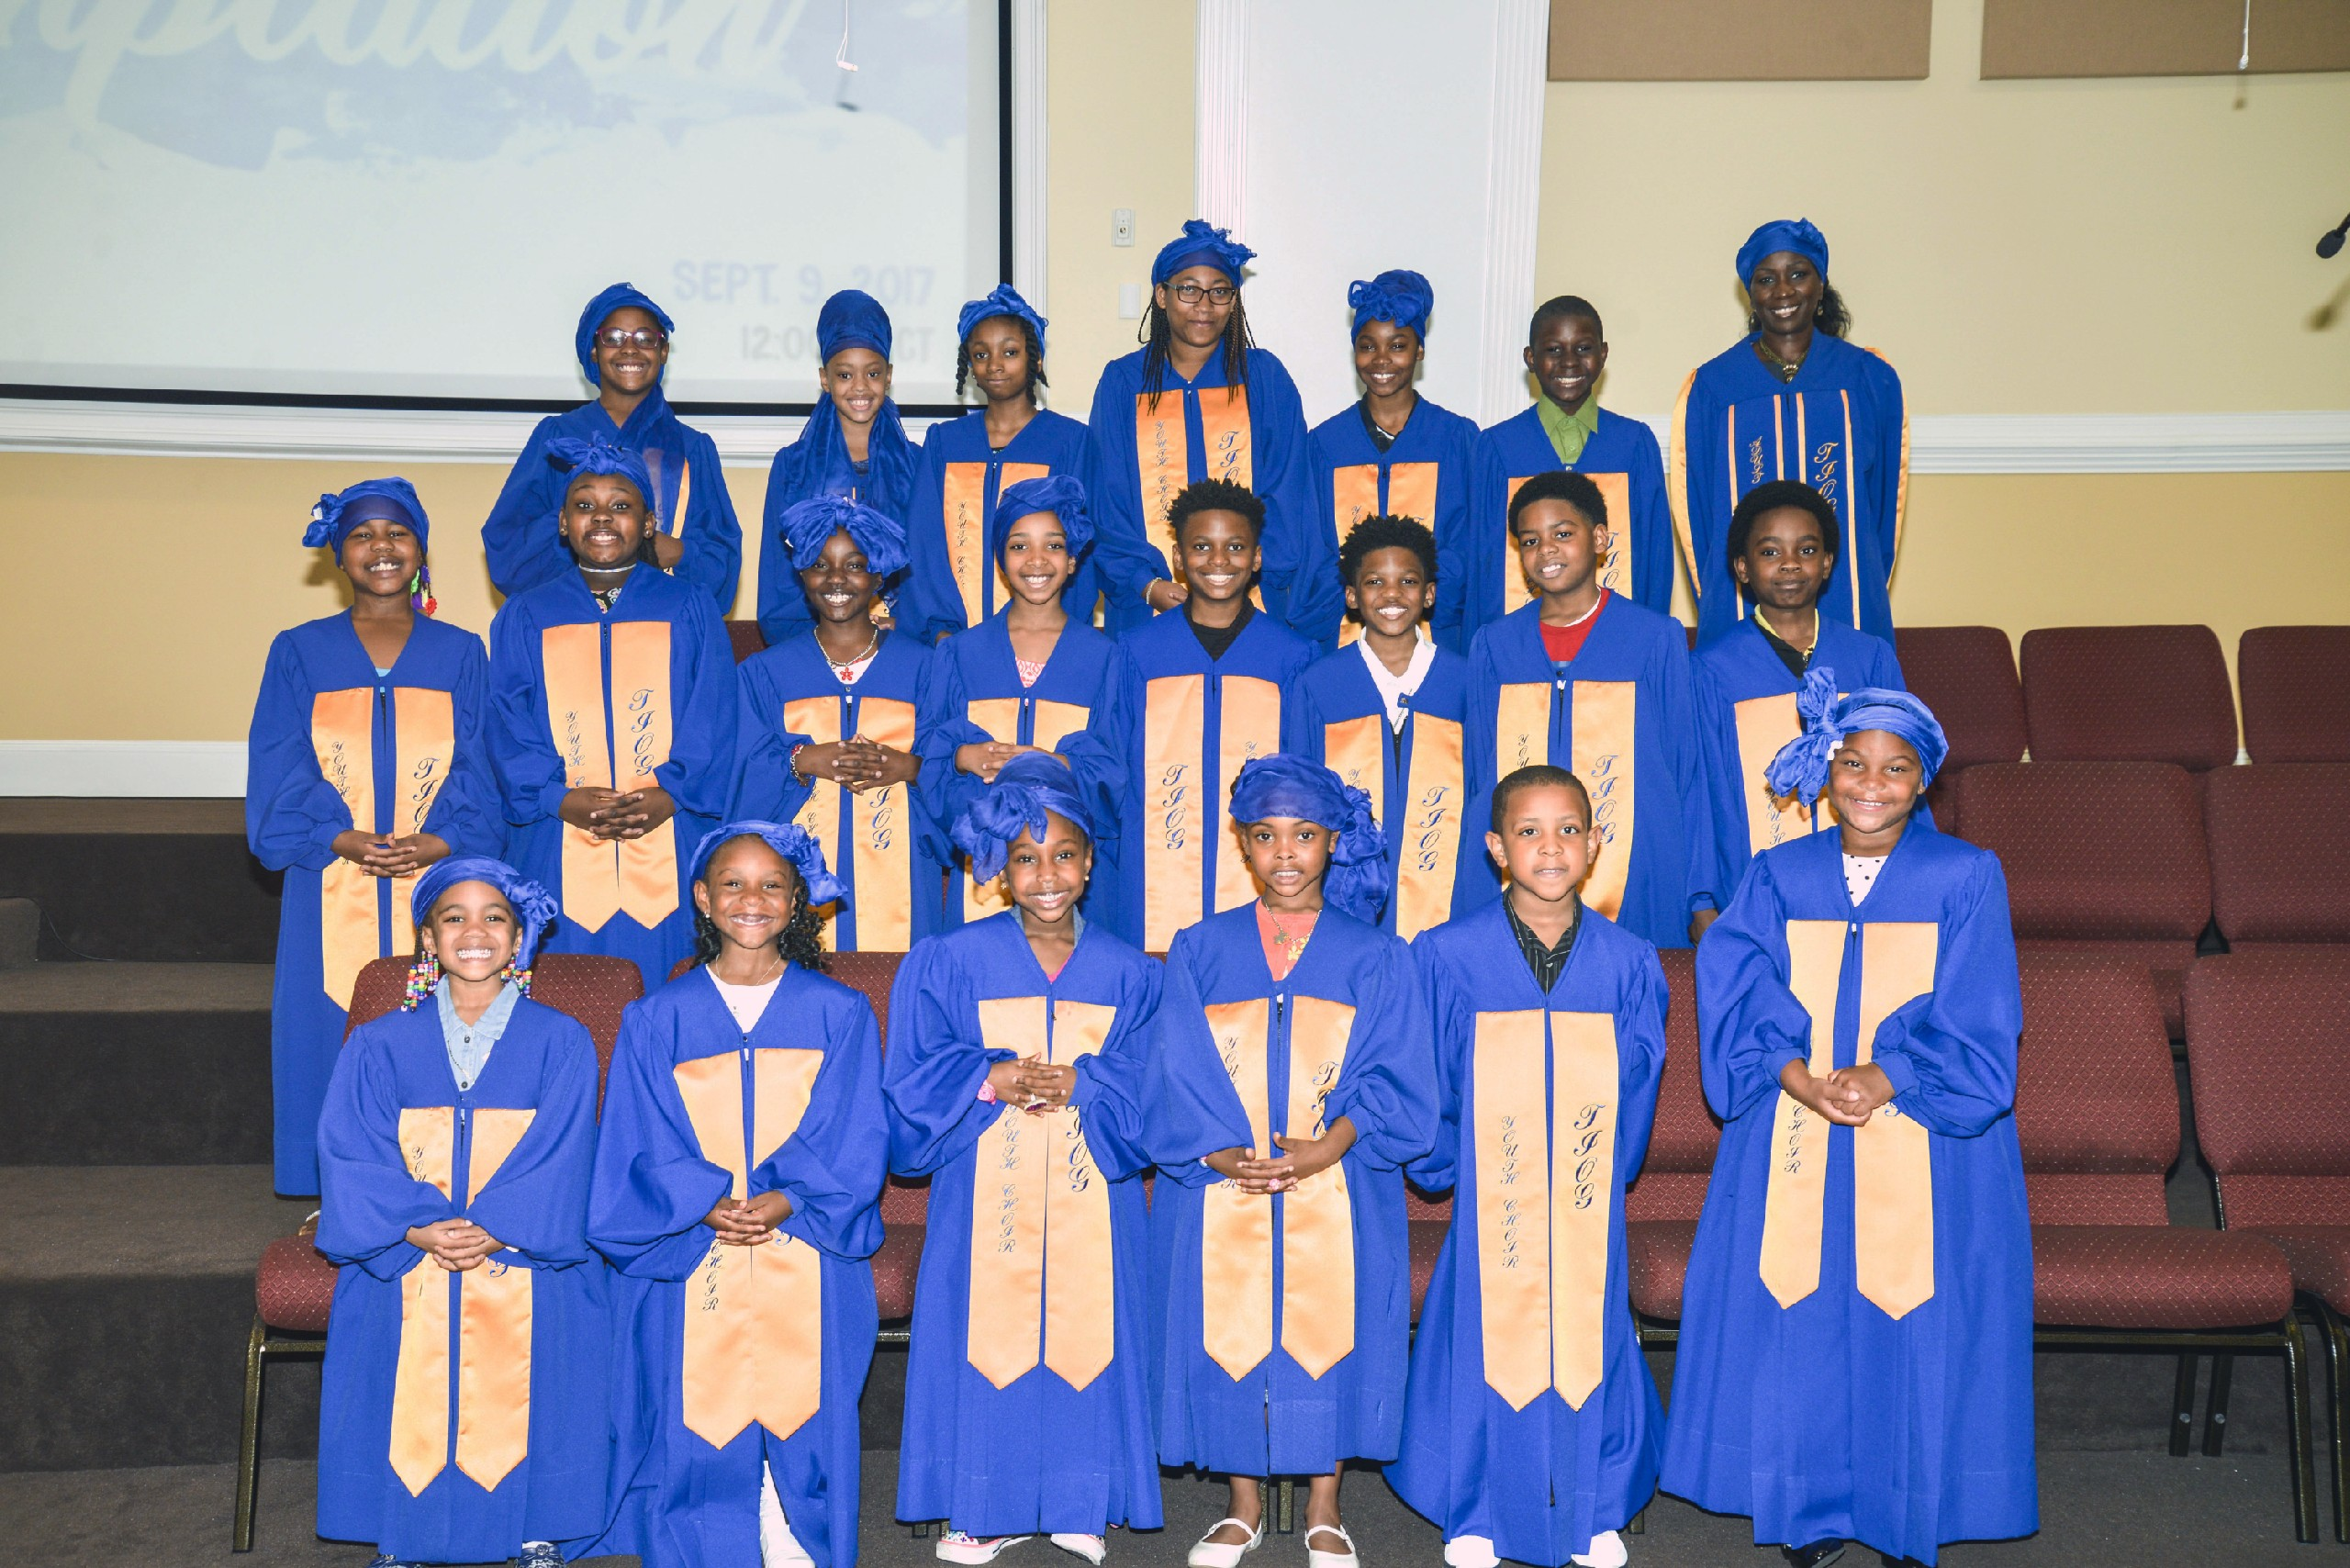 IOG children's choir